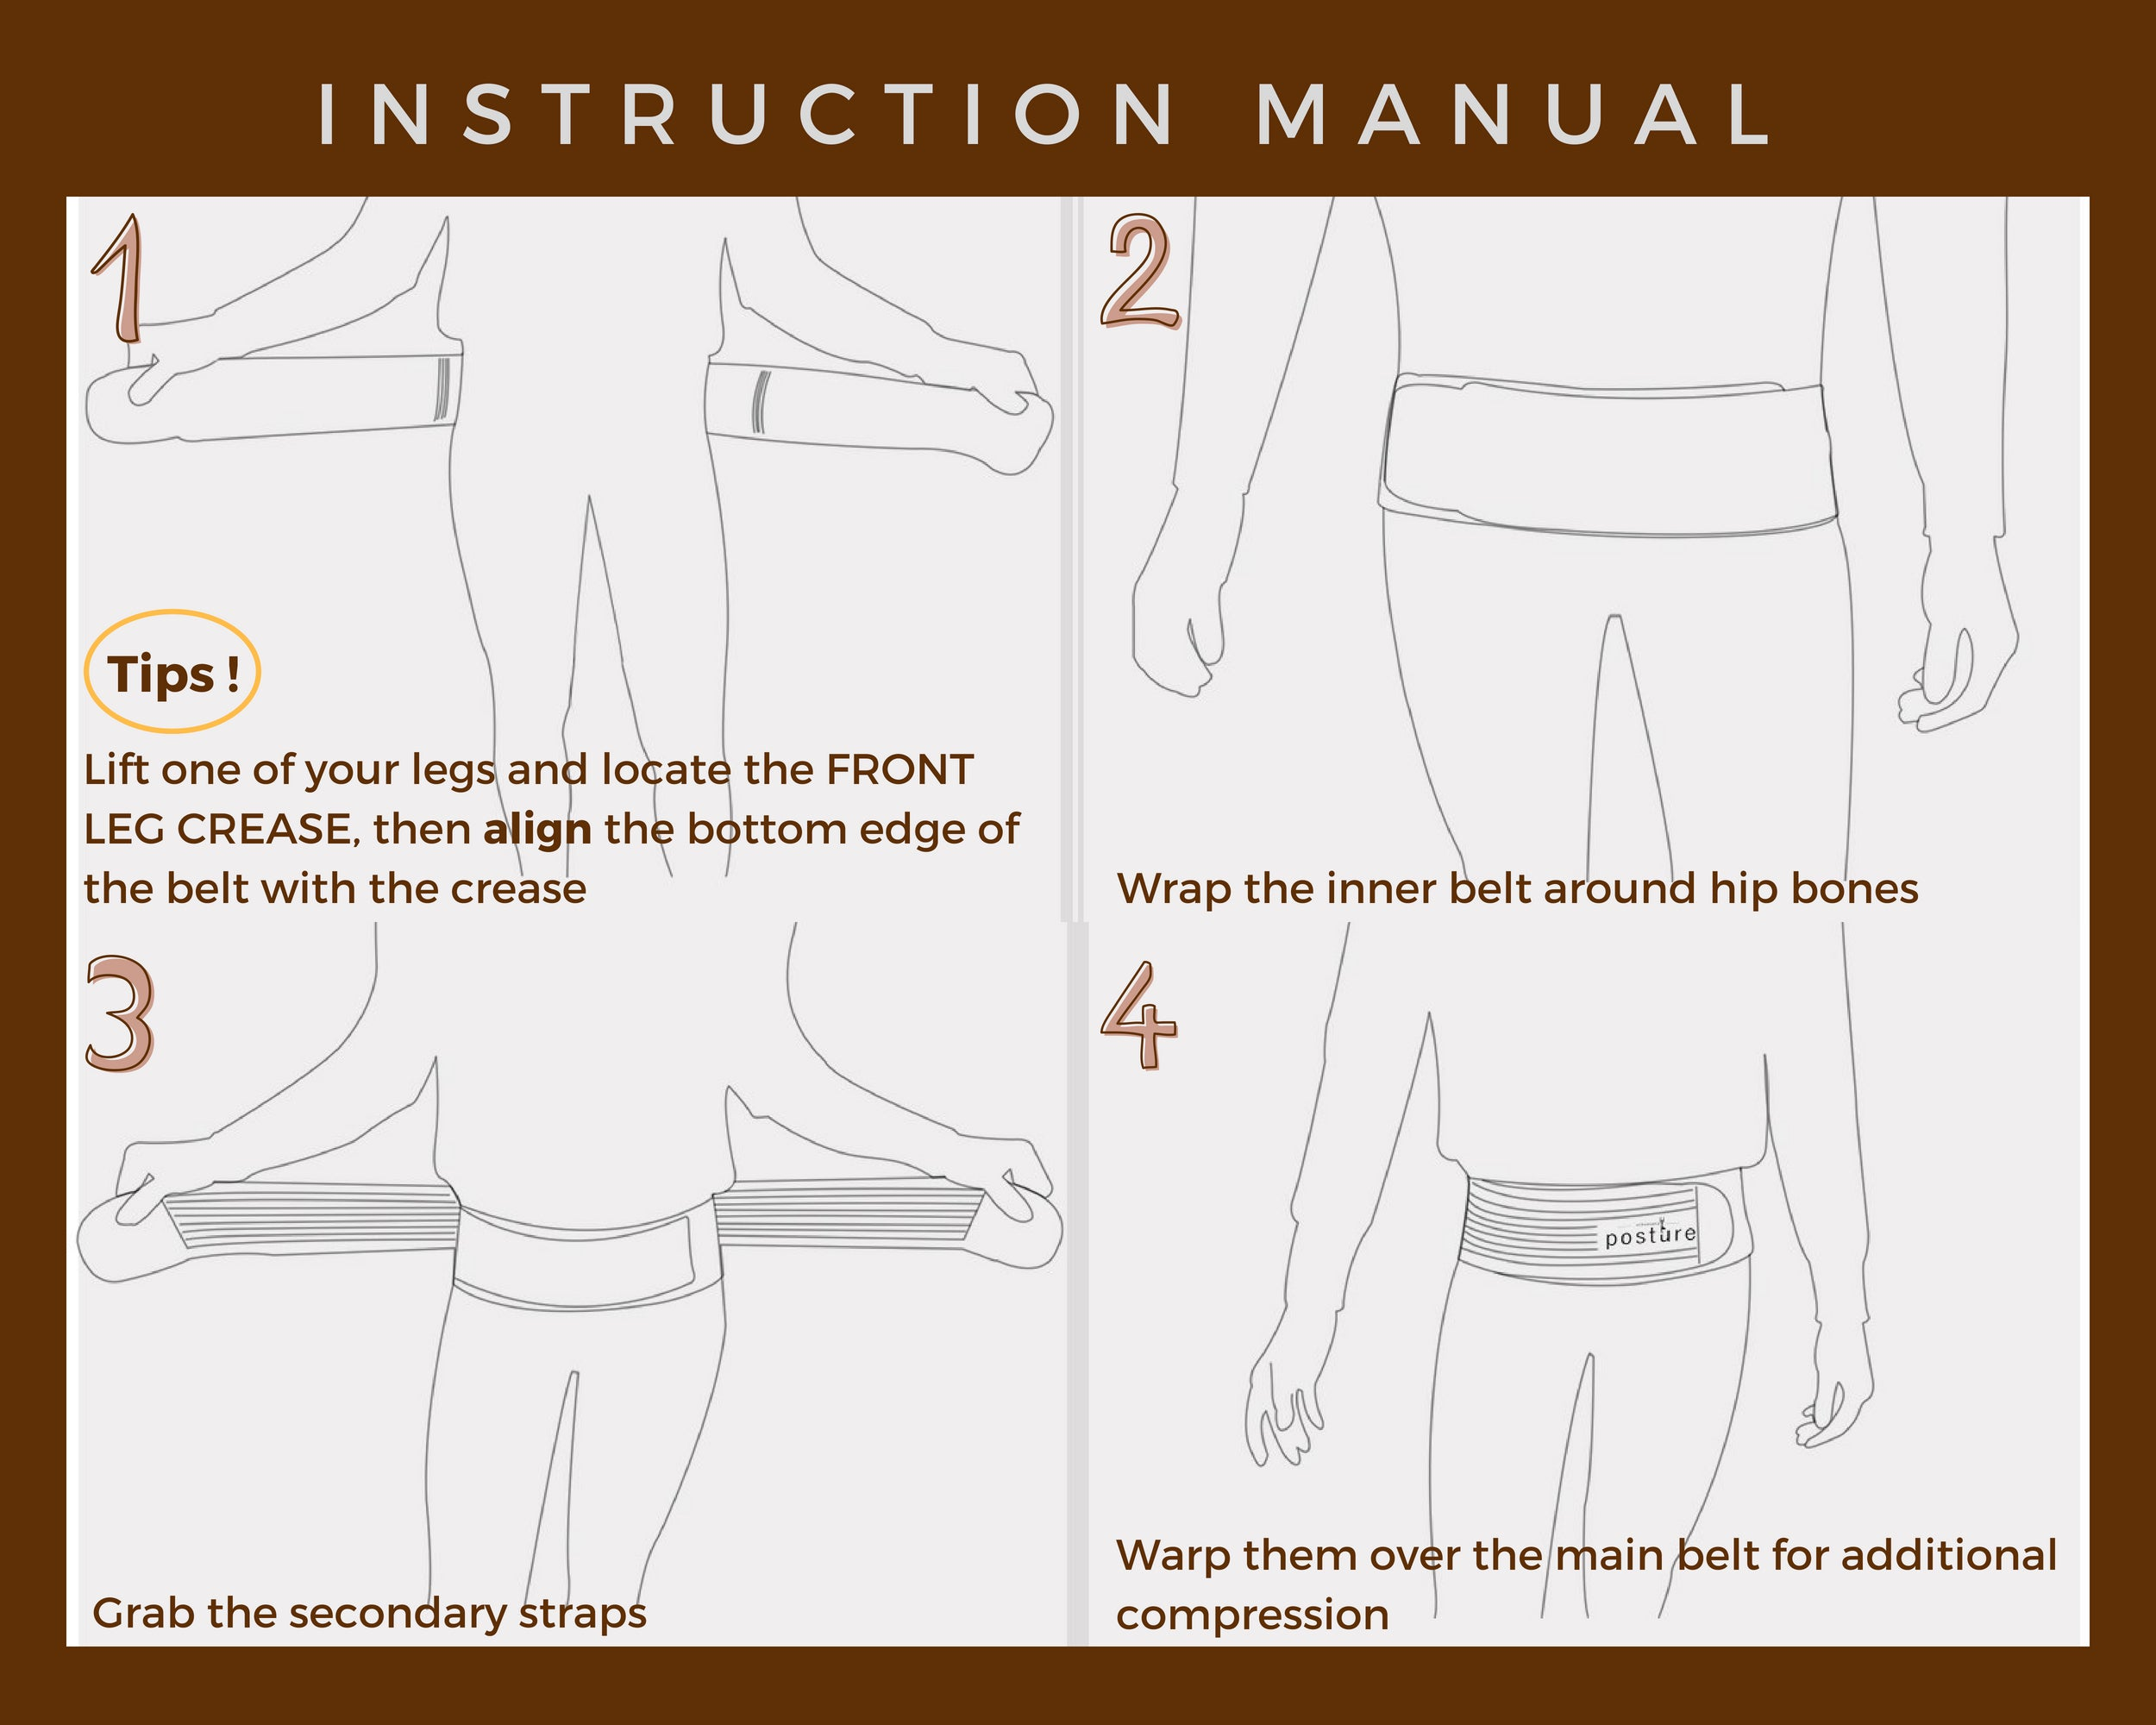 manual for Sacroiliac belt